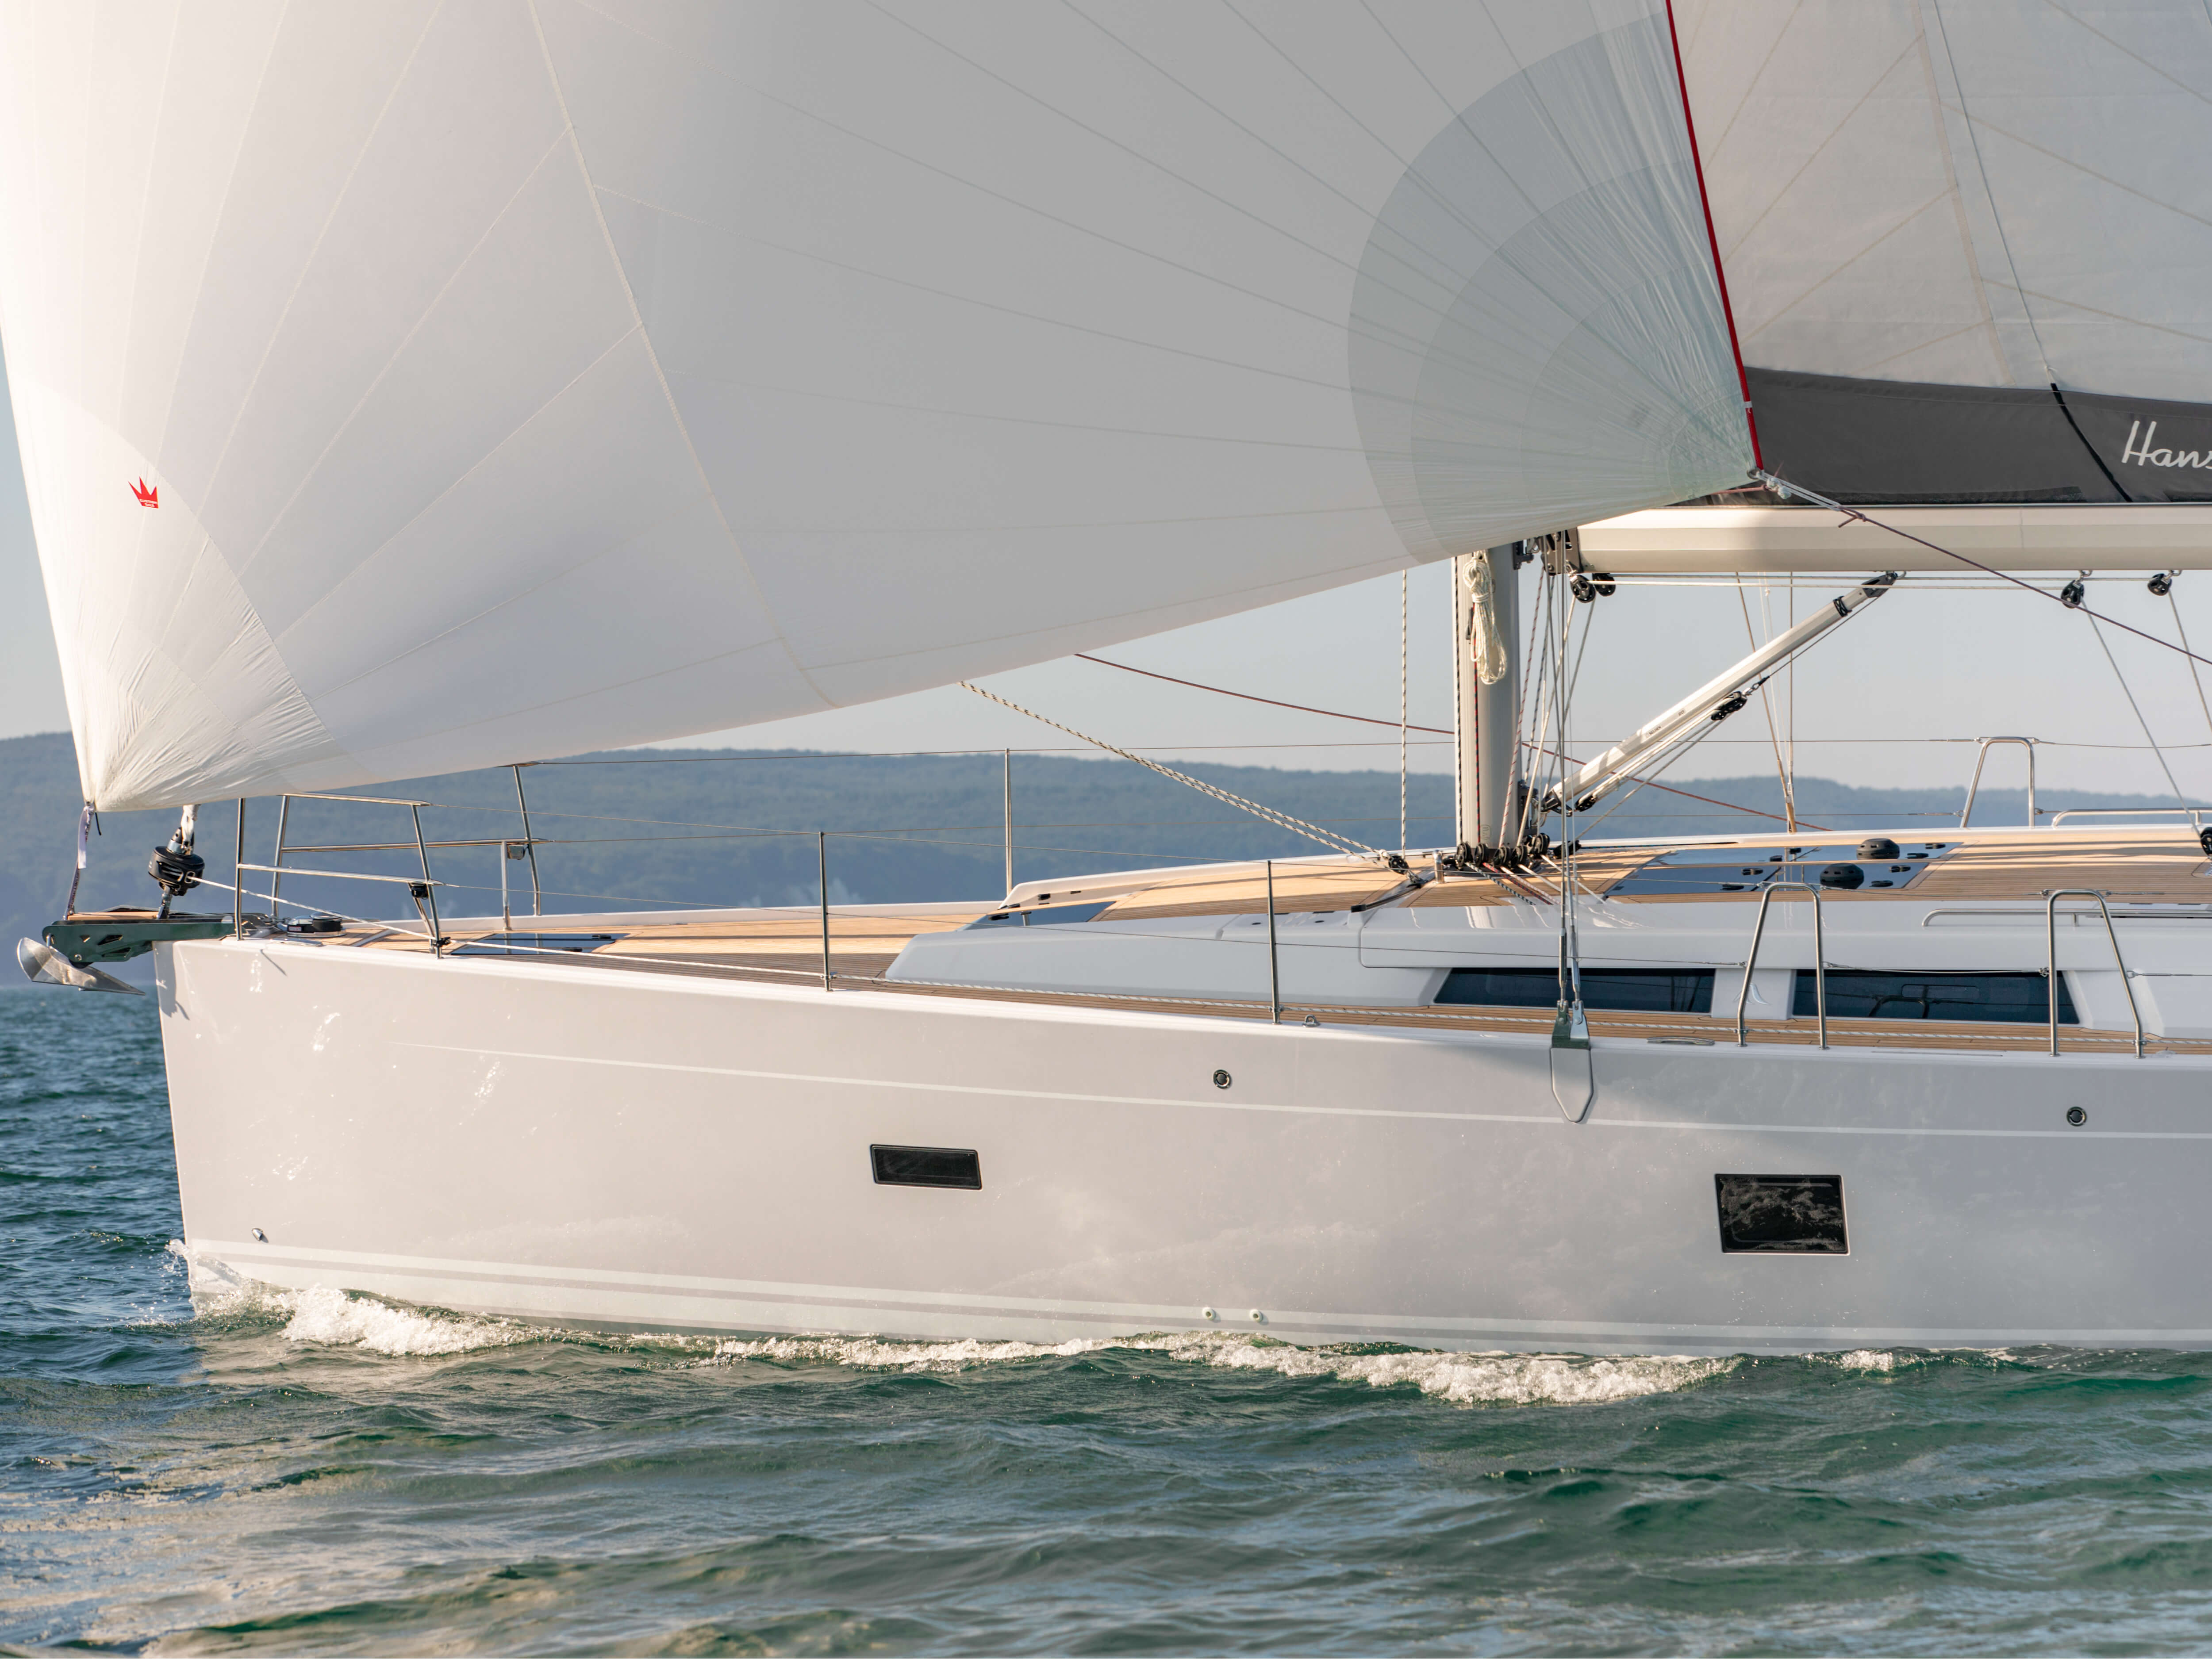 Hanse 458 | HANSE yachts amaze with their modern, functional design. Unique, puristic elegance meets exceptional performance from the pen of judel/vrolijk & co, the world's best and most experienced yacht designers. | Hanse